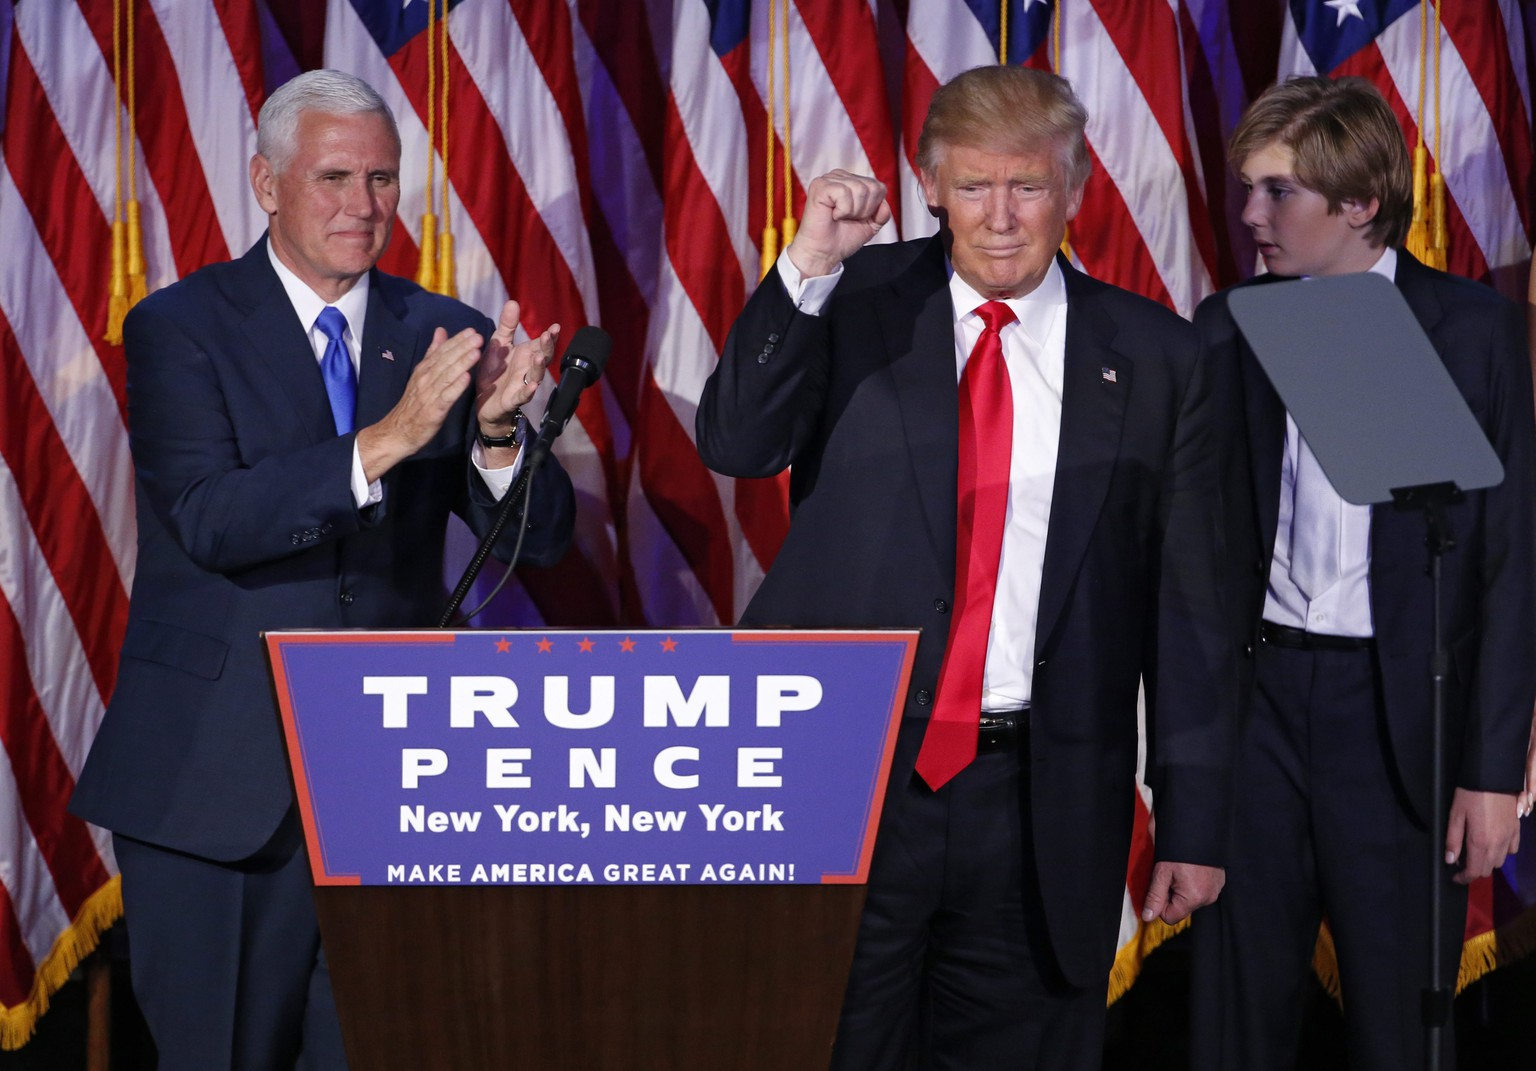 epa05623720 US Republican presidential nominee Donald Trump (C) waves next to running mate Mike Pence (L) as he delivers a speech on stage at Donald Trump's 2016 US presidential Election Night event as votes continue to be counted at the New York Hilton Midtown in New York, New York, USA, 08 November 2016.  EPA/SHAWN THEW